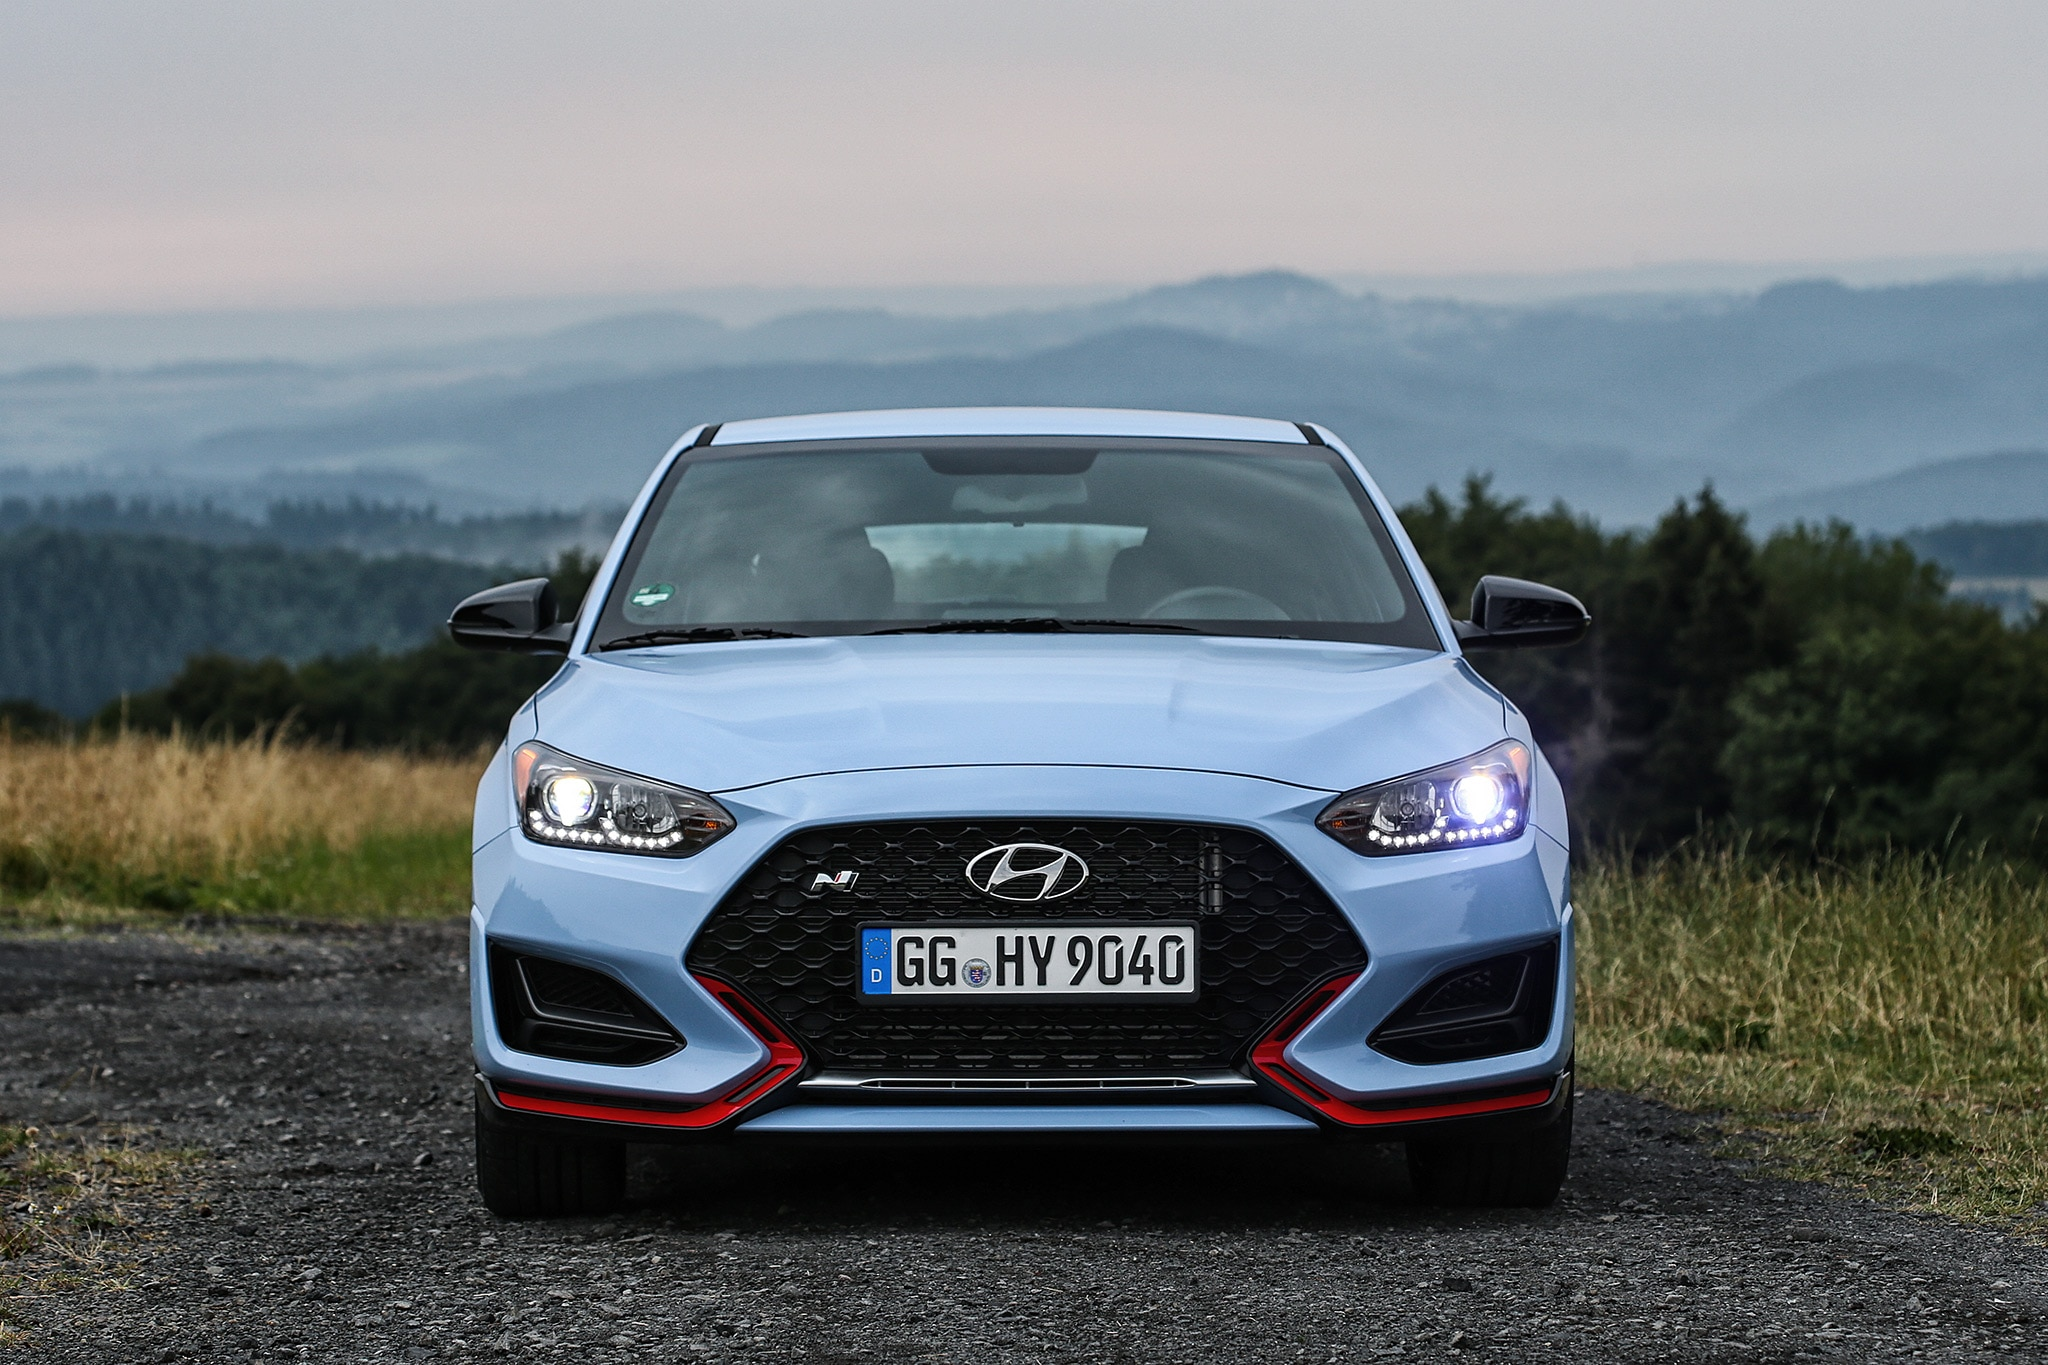 2019 hyundai veloster n first drive review automobile magazine. Black Bedroom Furniture Sets. Home Design Ideas